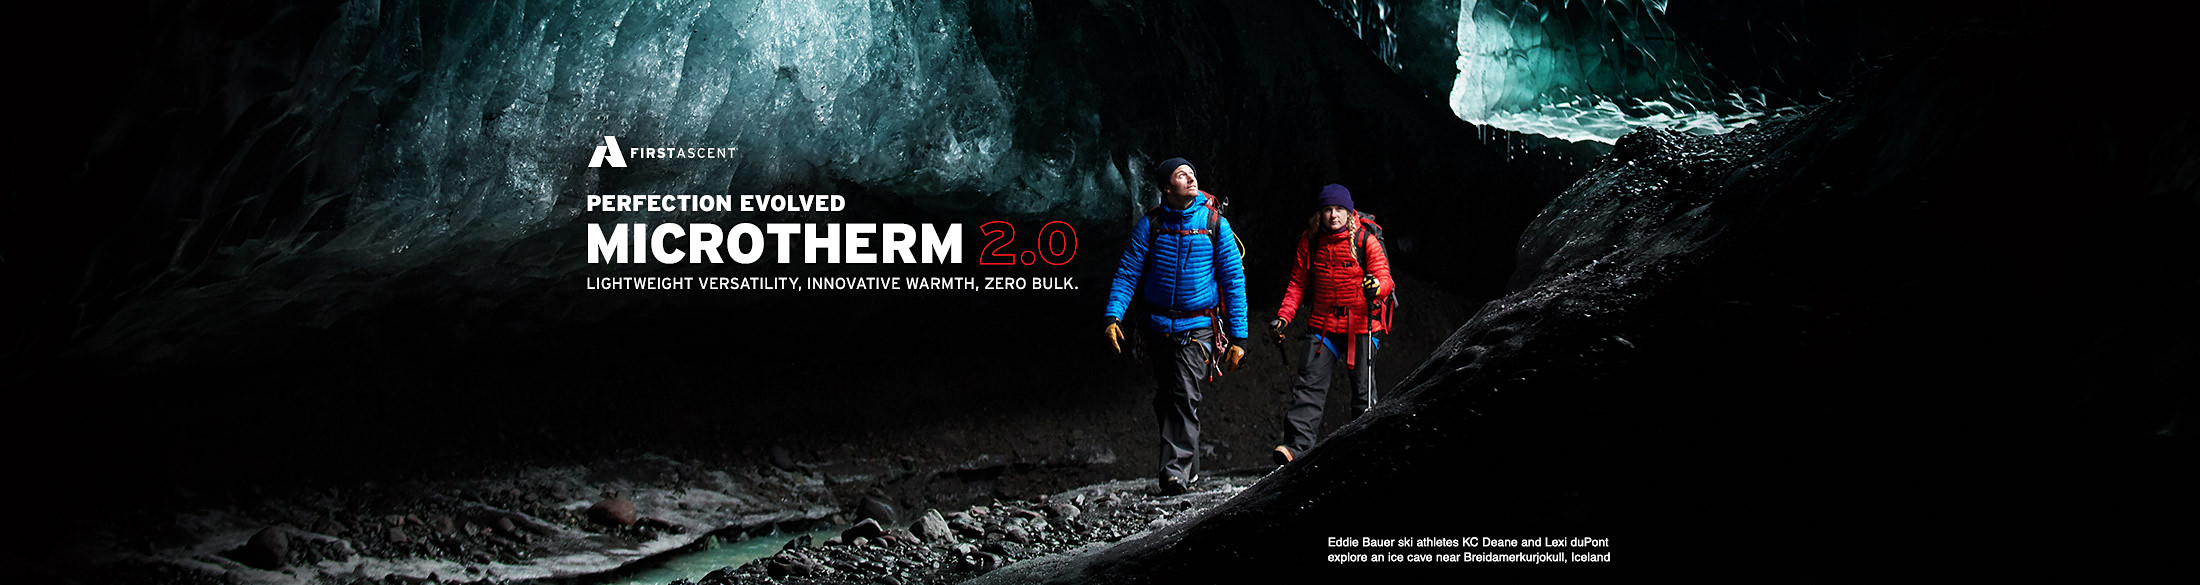 Two people wearing MicroTherm jackets walk in a dimly lit ice cave